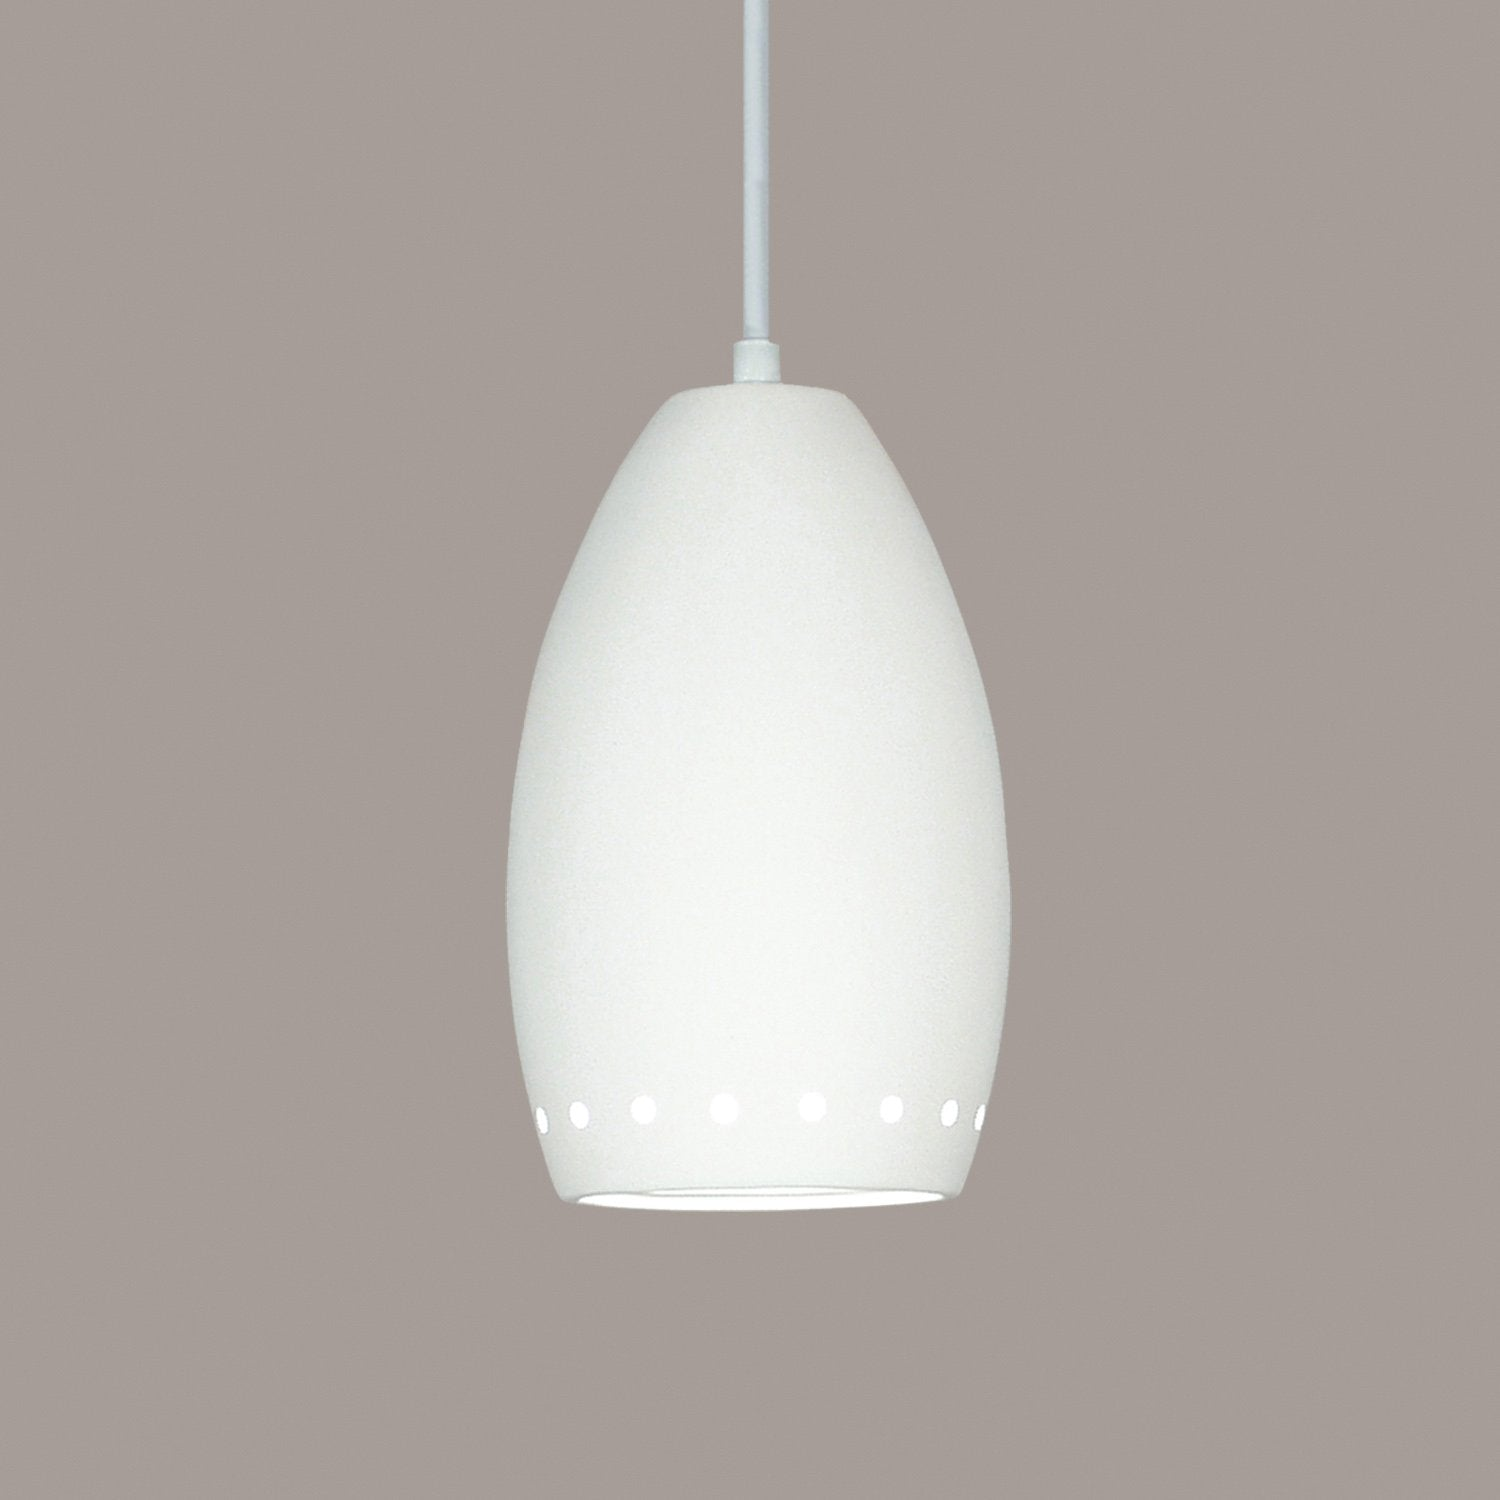 A19 P1503-A31-BCC Islands of Light Collection Grenada Satin White Finish Pendant